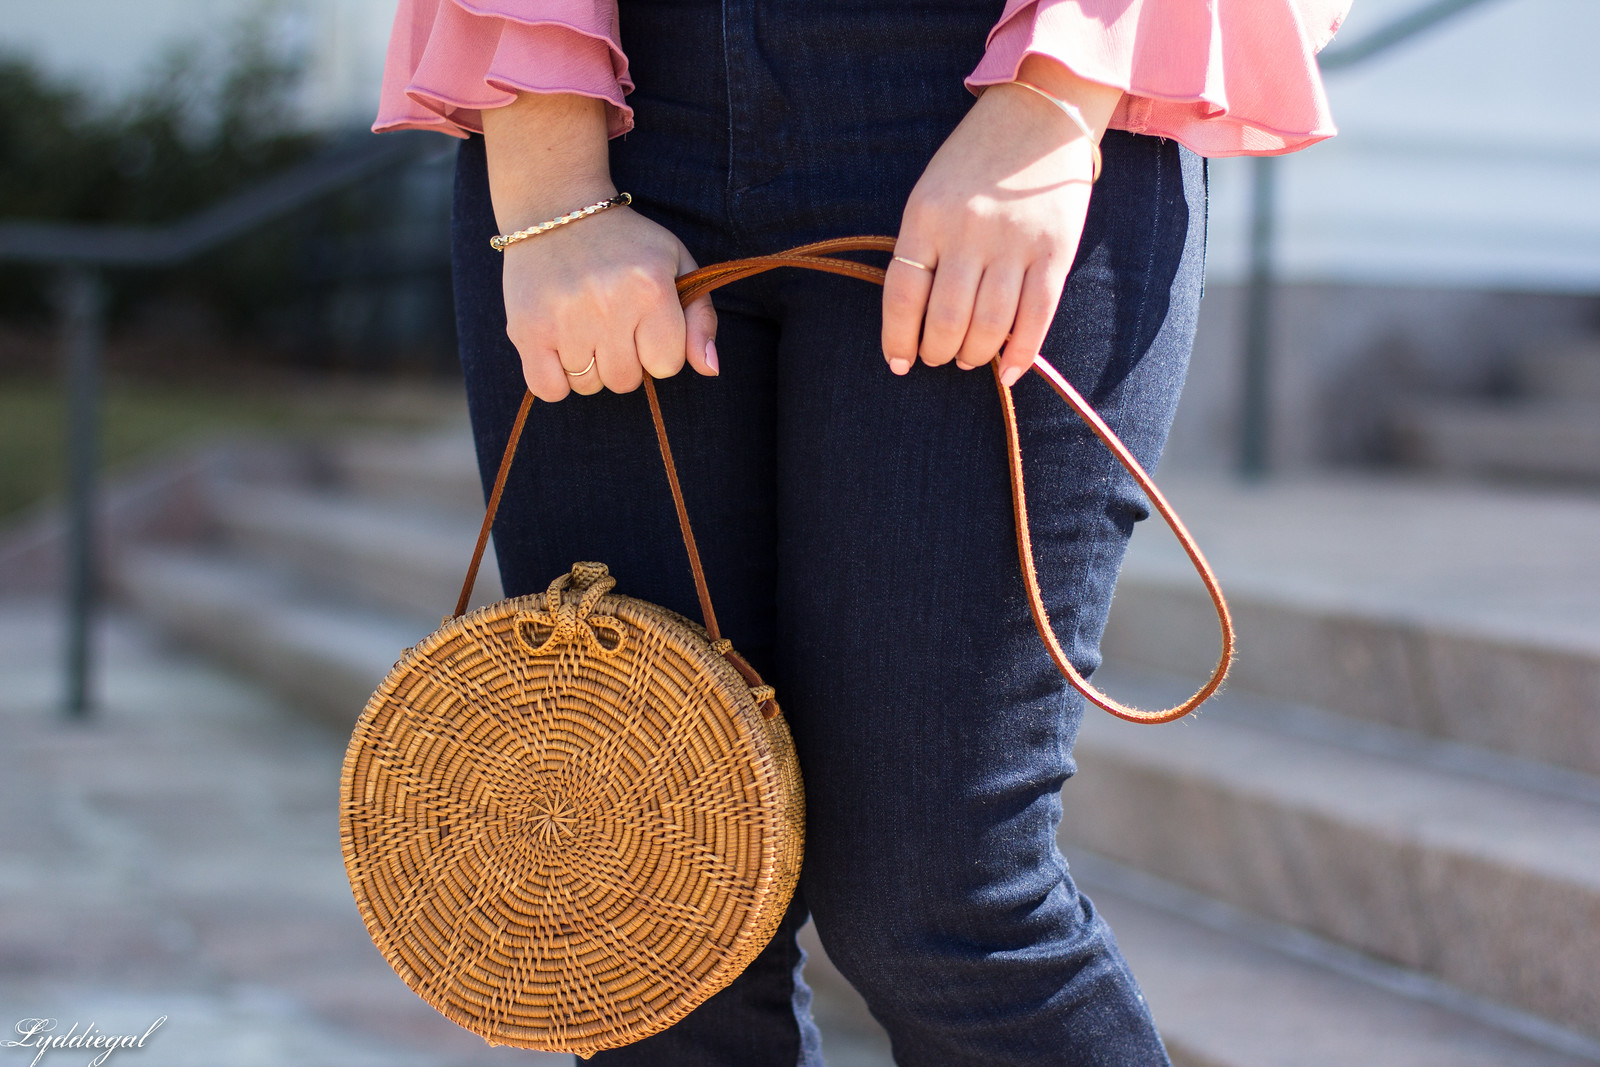 Pink Ruffled blouse, Flared Denim, Round rattan bag-34.jpg